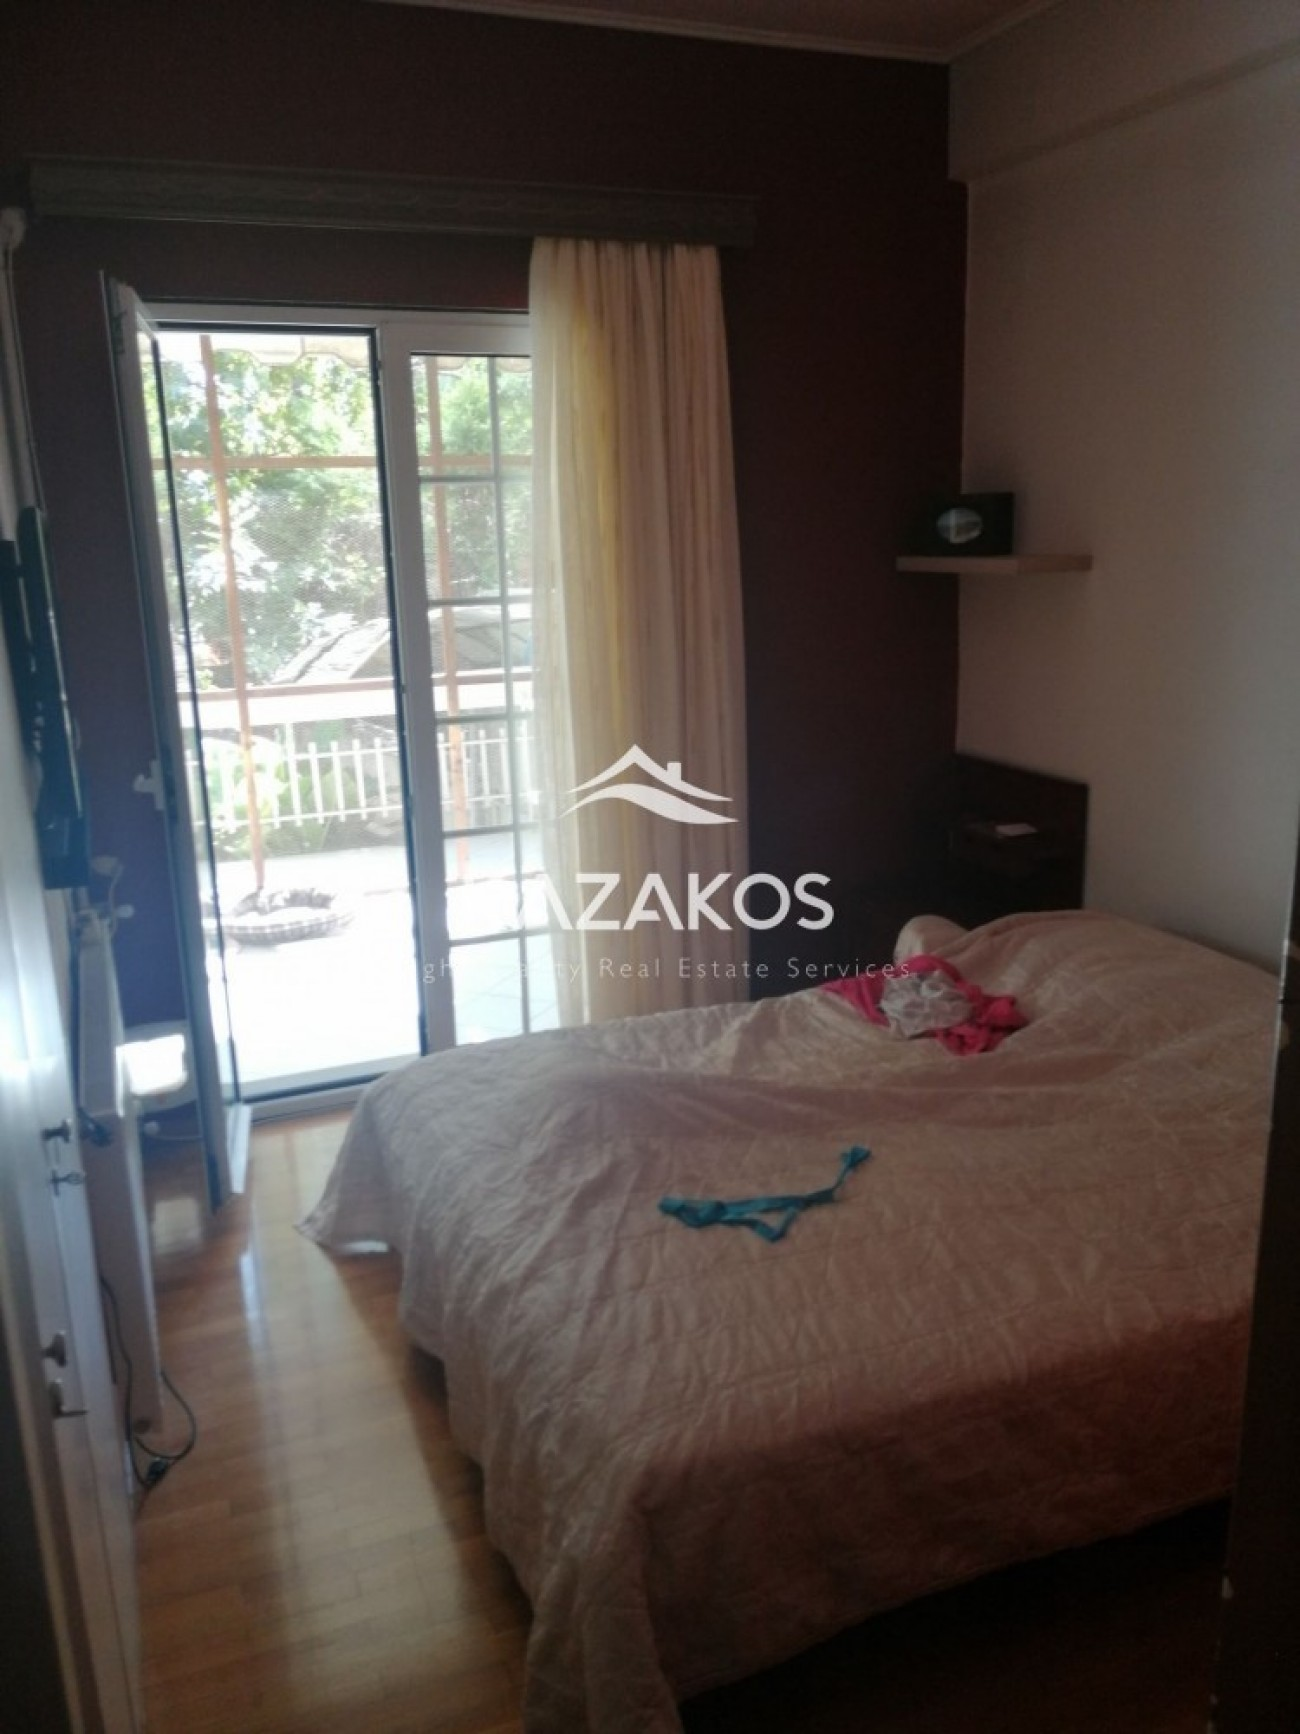 Apartment for Sale in Nea Erythraia, North & East Region of Athens, Greece